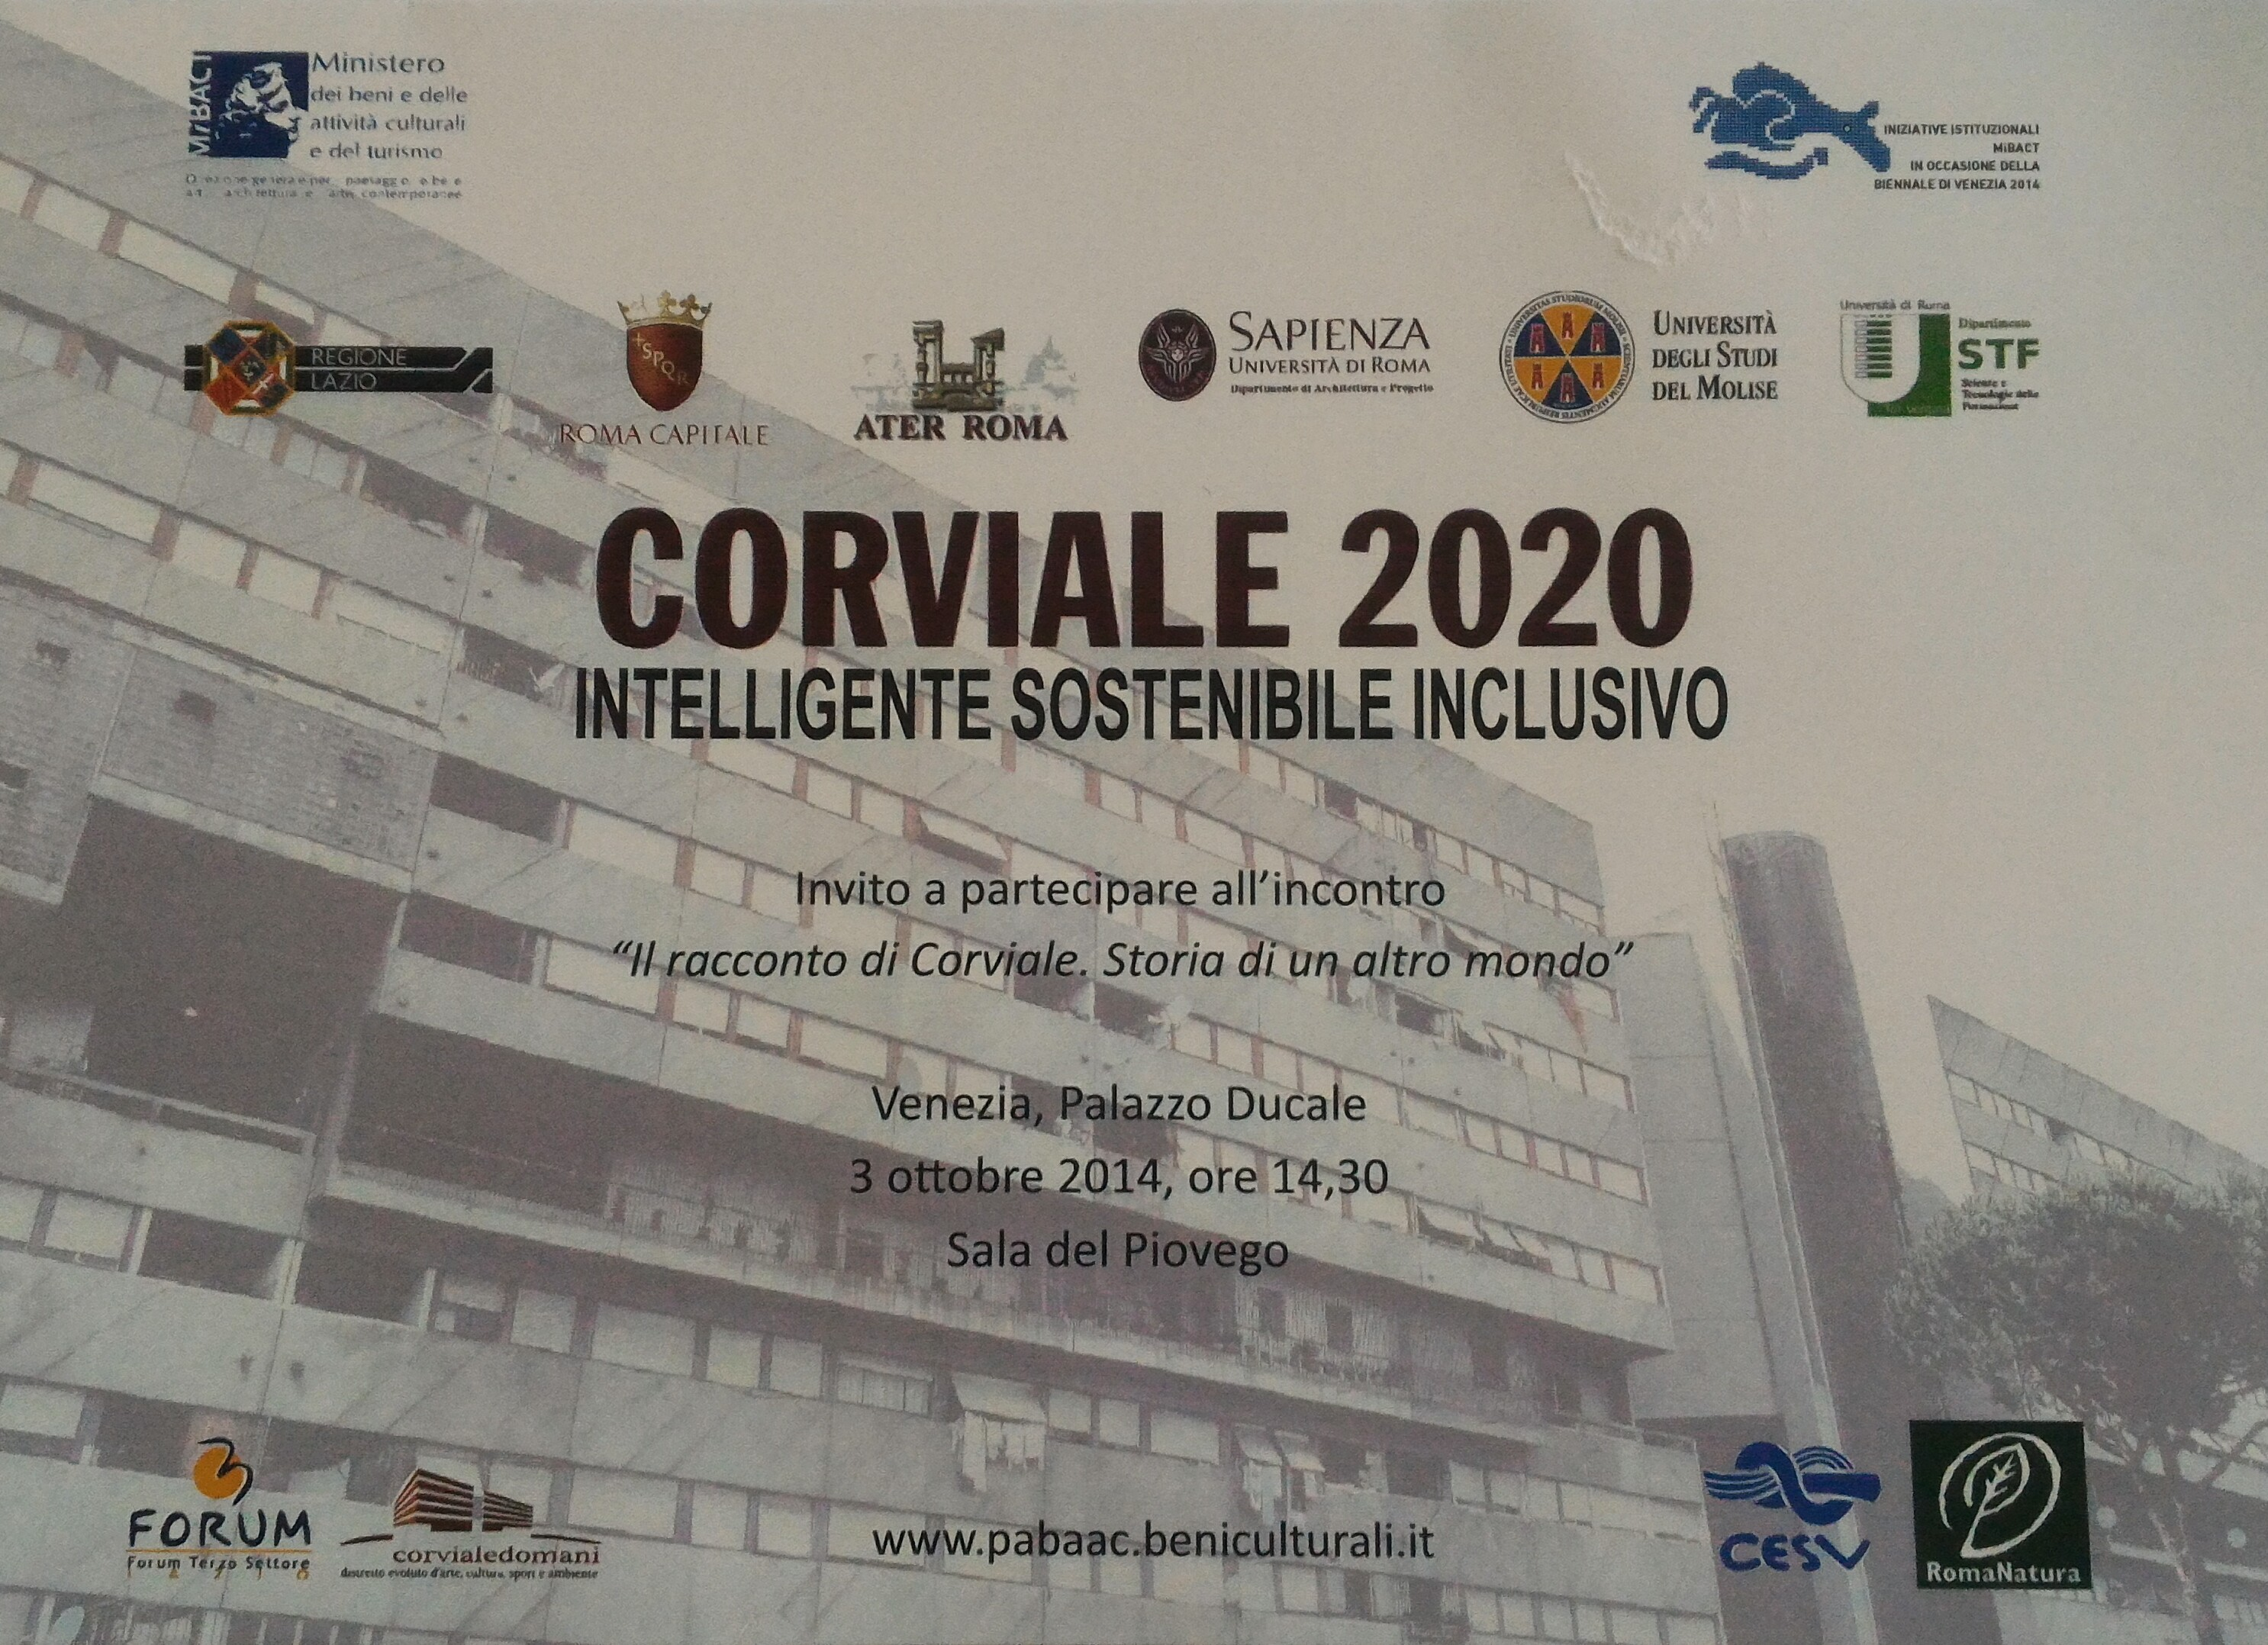 CORVIALE 2020- Intelligente, Sostenibile, Inclusivo